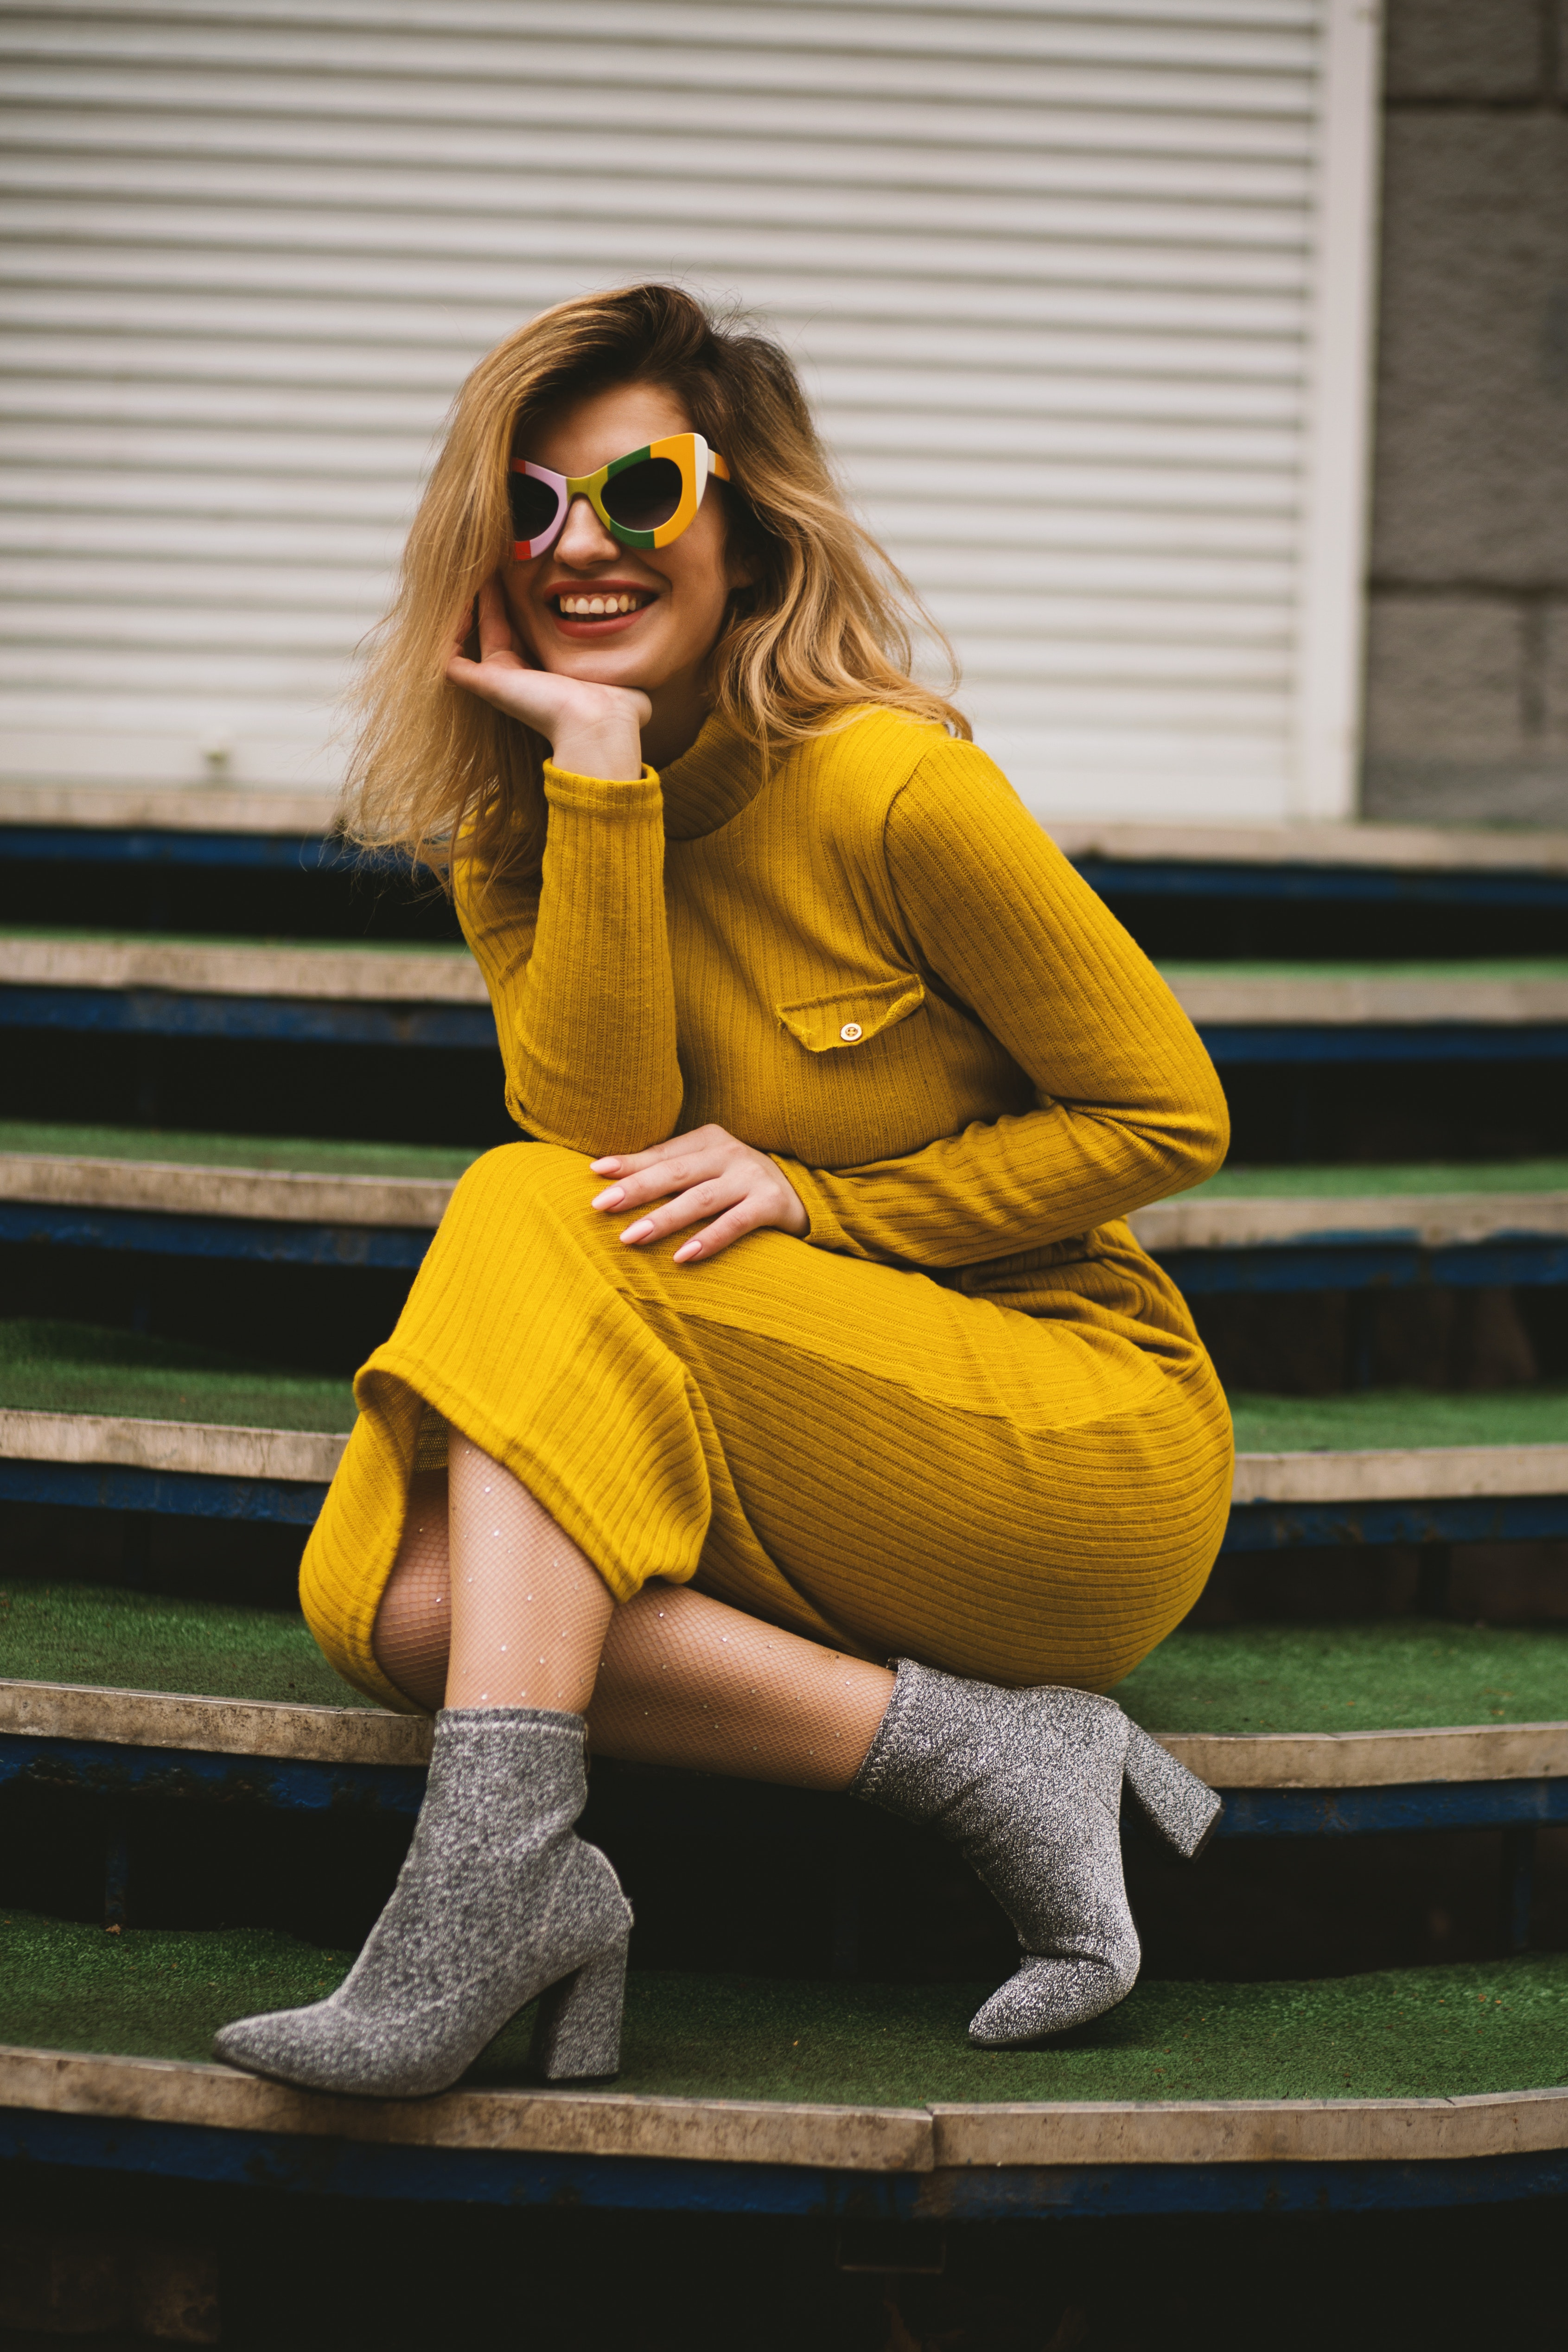 Stylish model in a yellow dress and sunglasses posing on the steps.